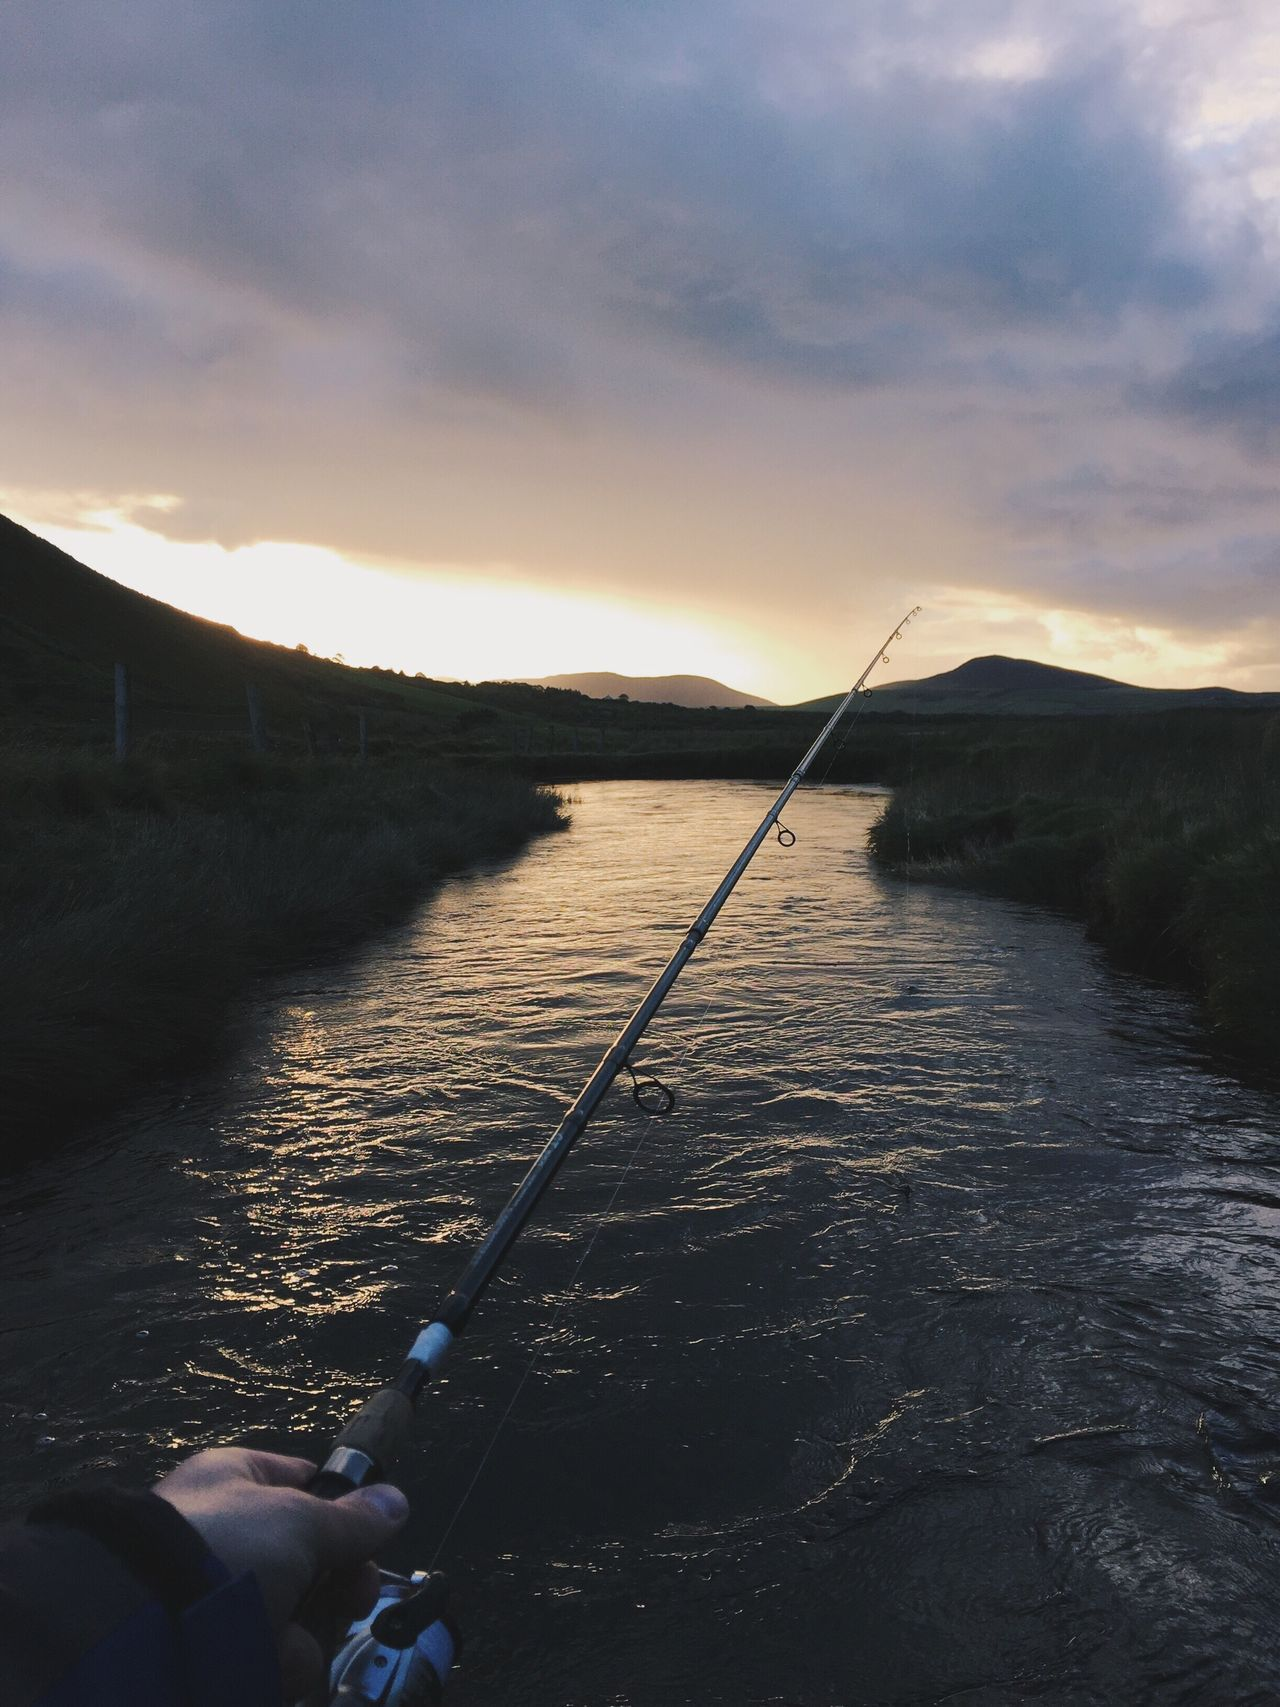 Fishing Fishing Fishing Rod Fishing Pole Water Sunset Sky Tranquility Cloud - Sky Nature Tranquil Scene Leisure Activity Real People Fishing Tackle Beauty In Nature Outdoors Catch Of Fish One Person Mountain Day Wading Salmon Fishing Troutfishing